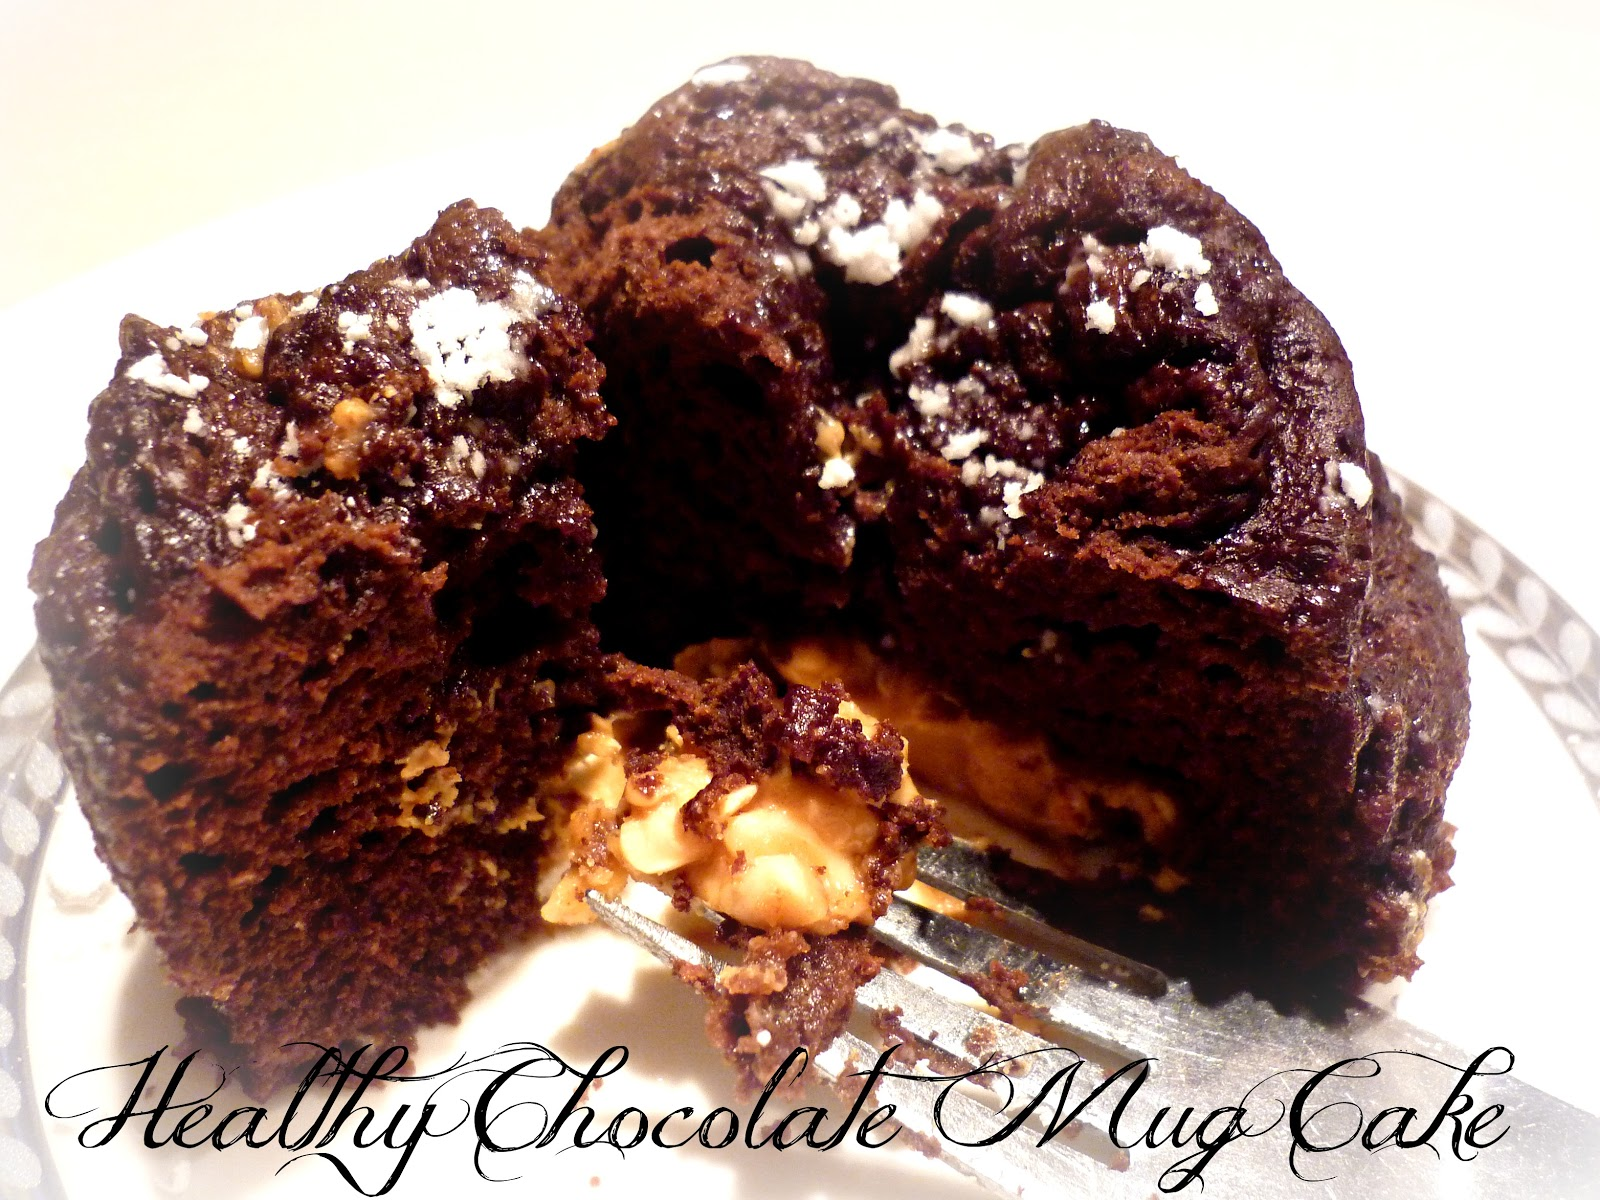 ... The Working Mom: Healthy Chocolate Mug Cake with Peanut Butter Filling